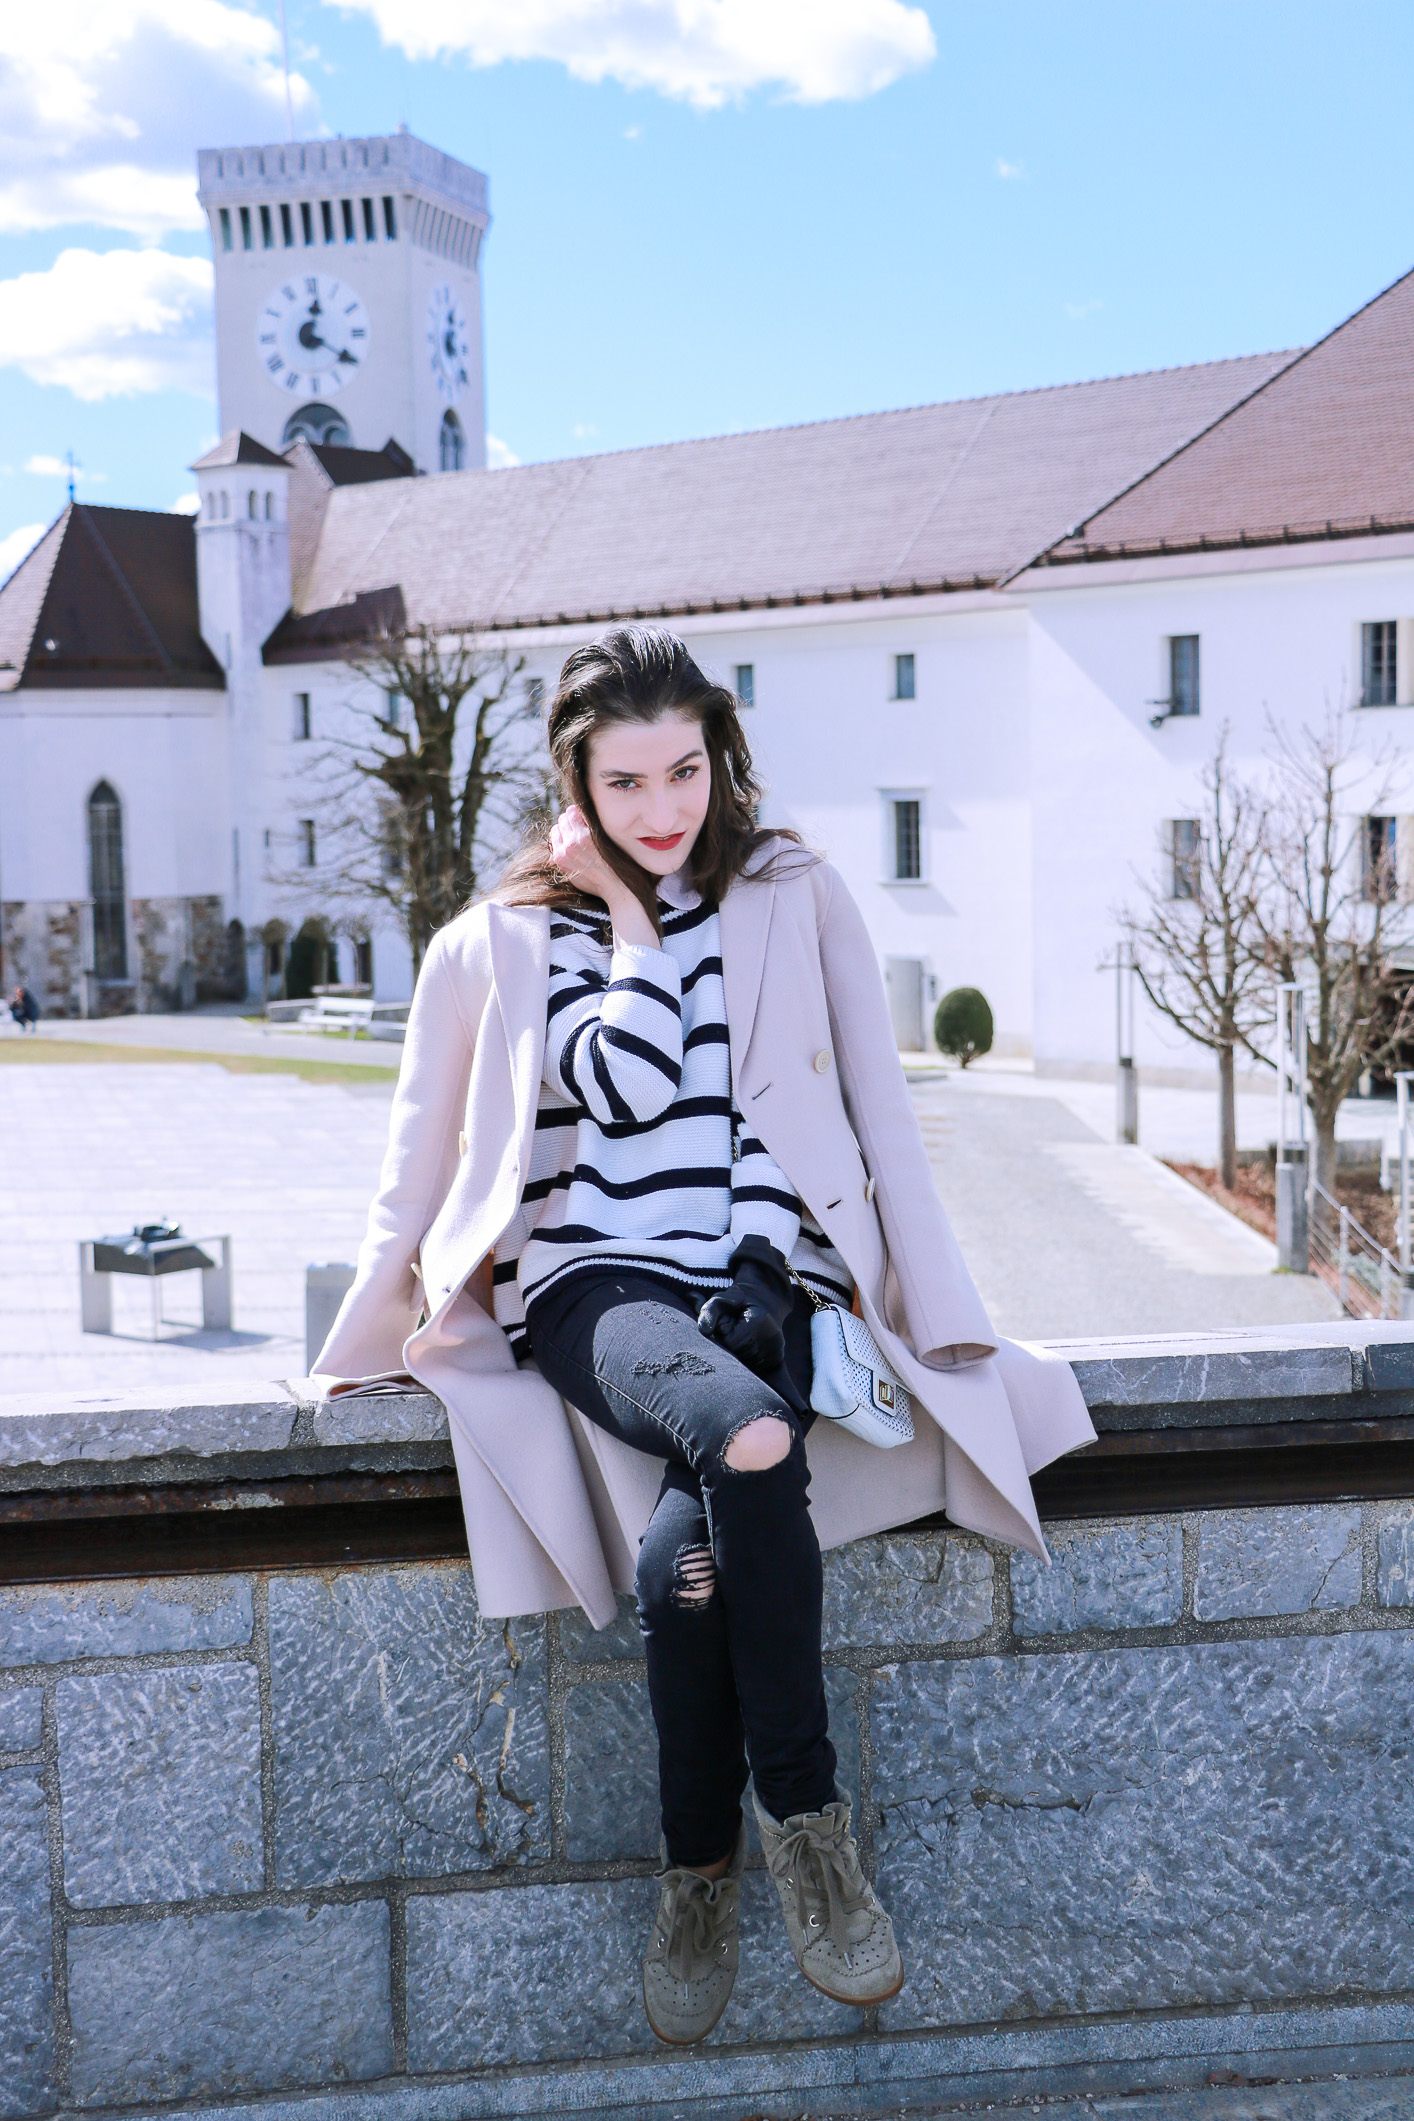 Fashion blogger Veronika Lipar of Brunette From Wall Street sharing how to be a fashionable tourist